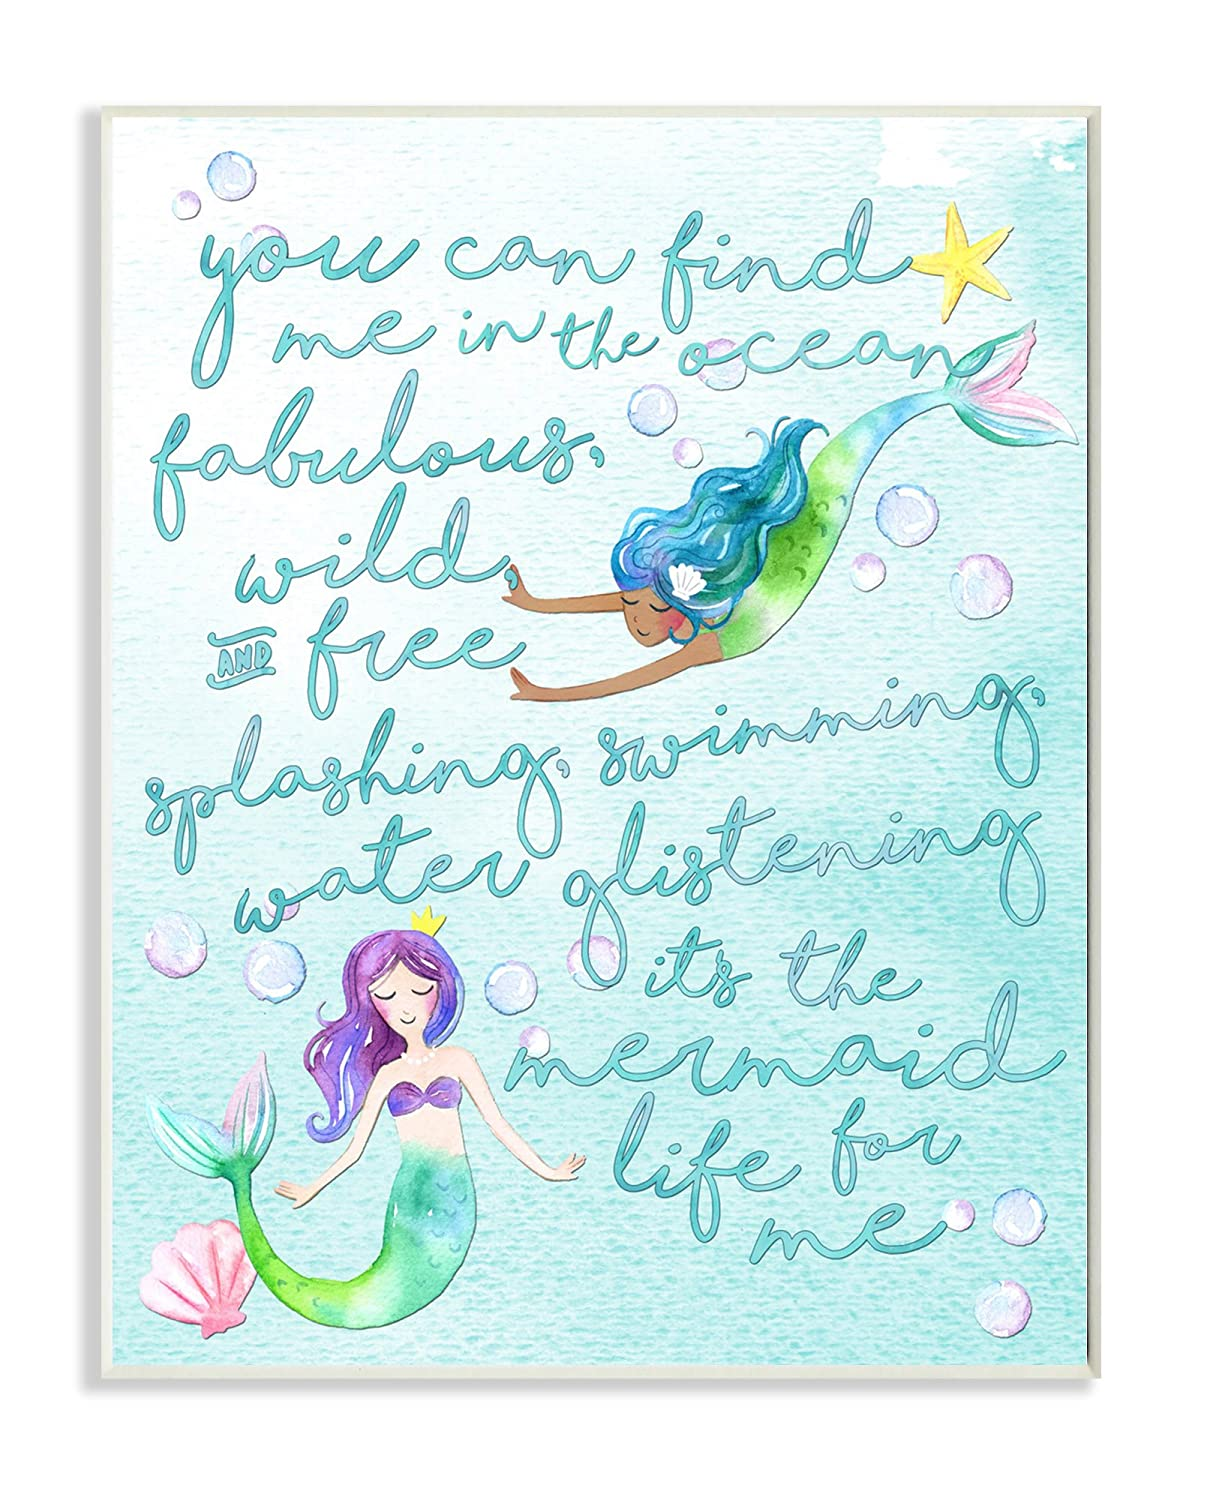 Stupell Home Décor Mermaid Life For Me Painting Wall Plaque Art, 10 x 0.5 x 15, Proudly Made in USA Stupell Industries brp-1818_wd_10x15